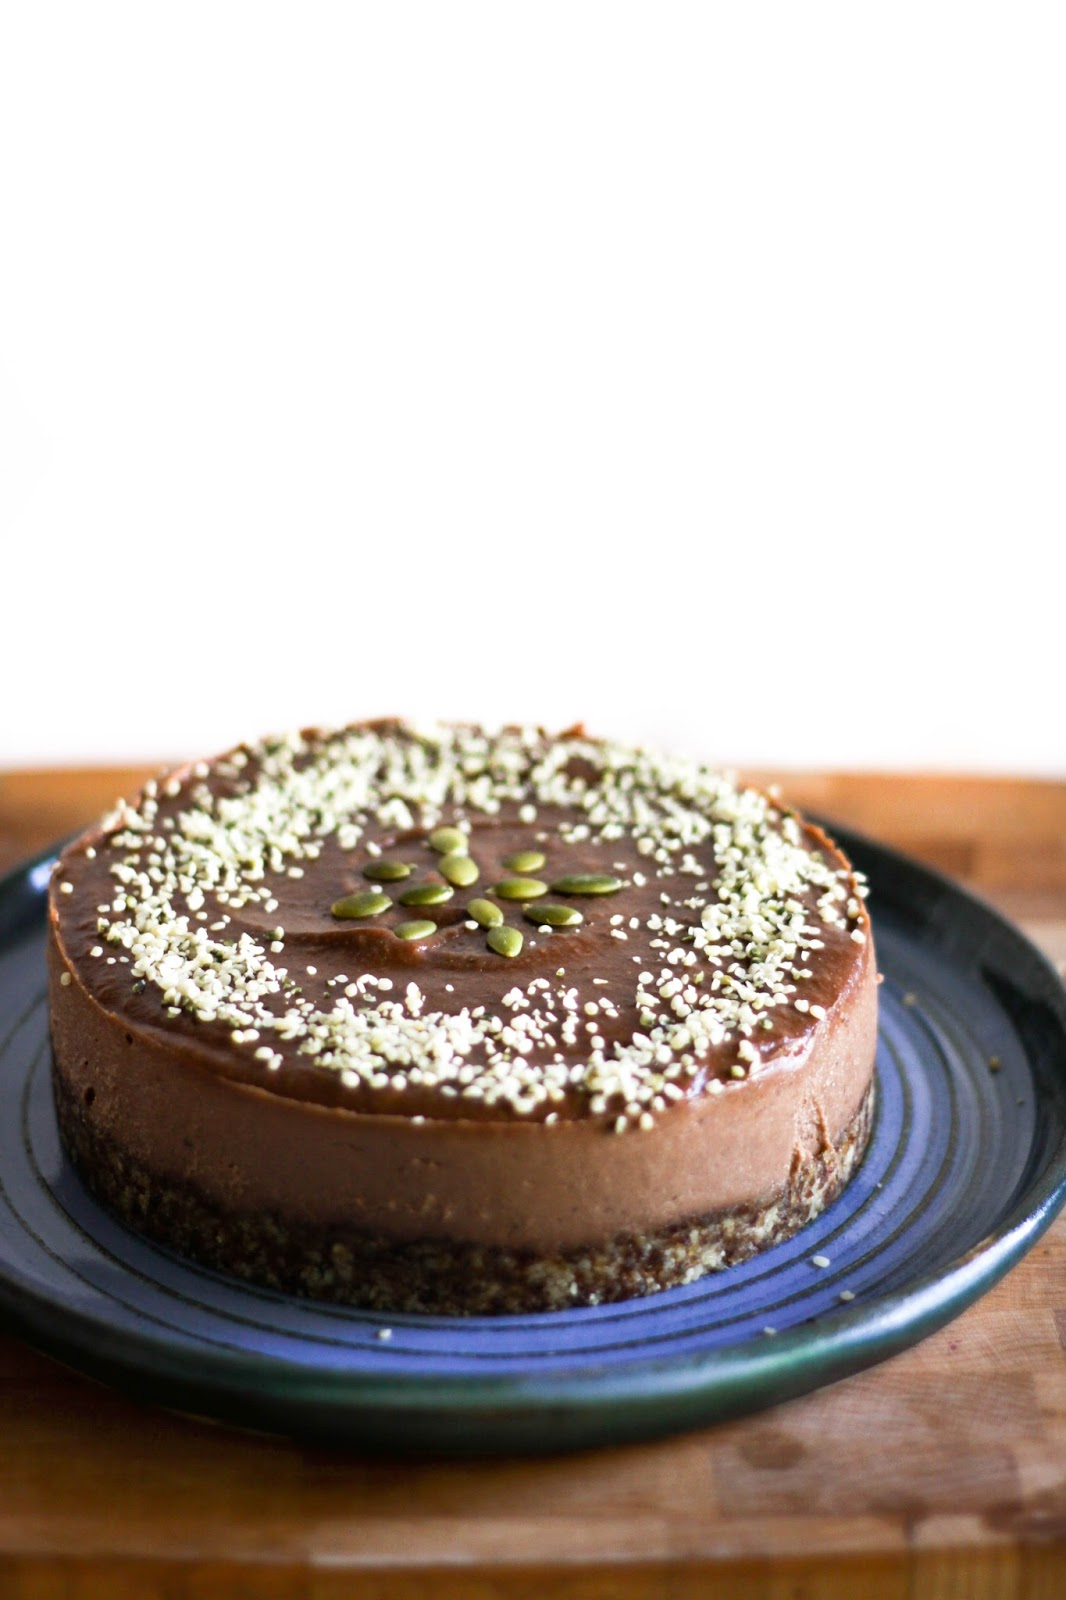 This rawsome vegan life raw vegan chocolate cake a simple quick and easy recipe for the best raw vegan chocolate cake i whipped this up for my lovers birthday celebration family dinner and his whole forumfinder Images